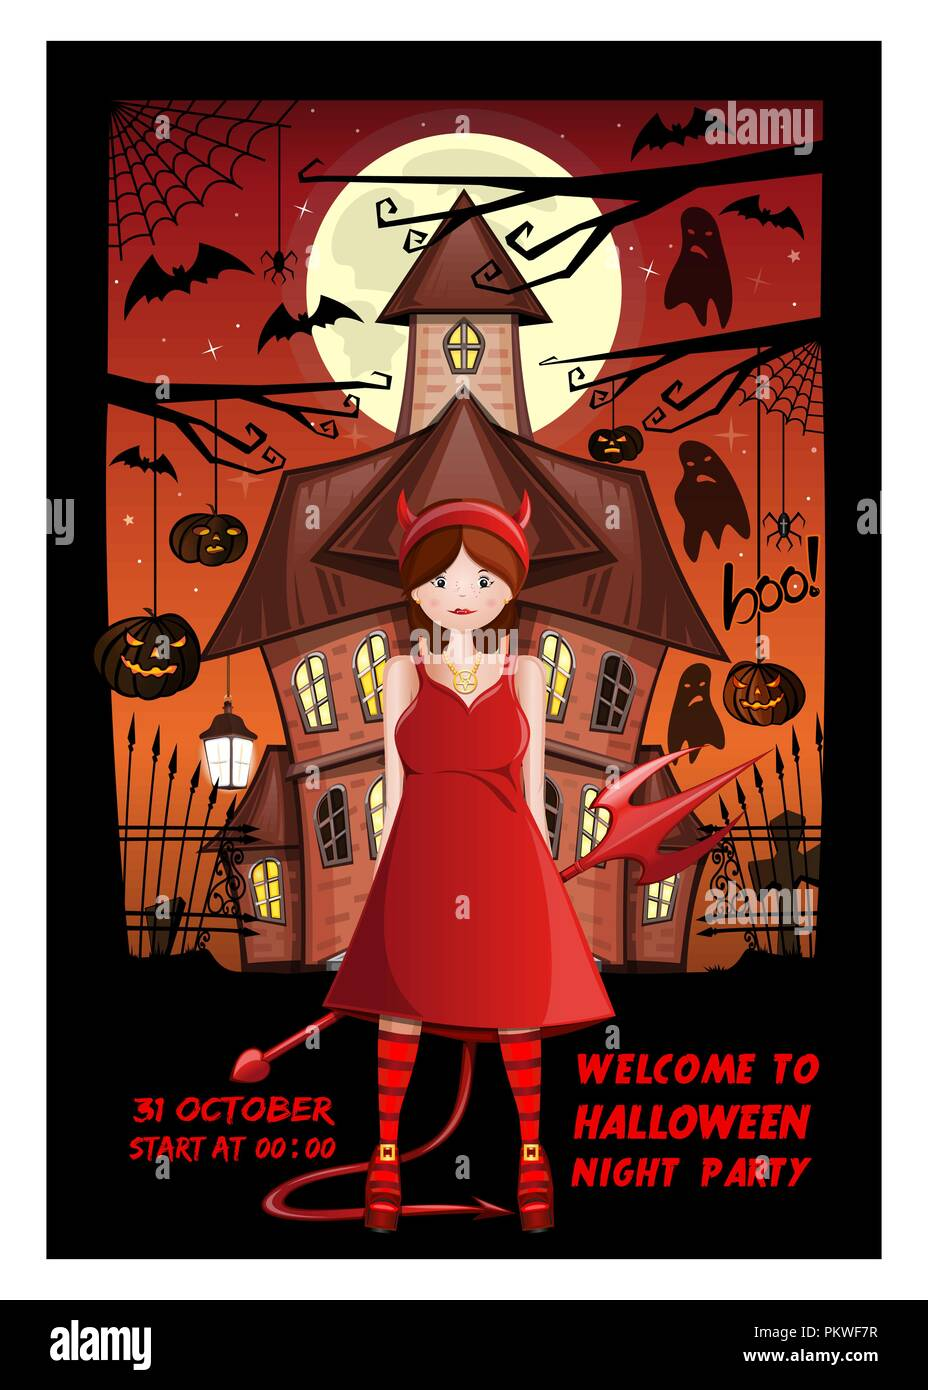 Halloween Invitation Card Design Welcome To Halloween Night